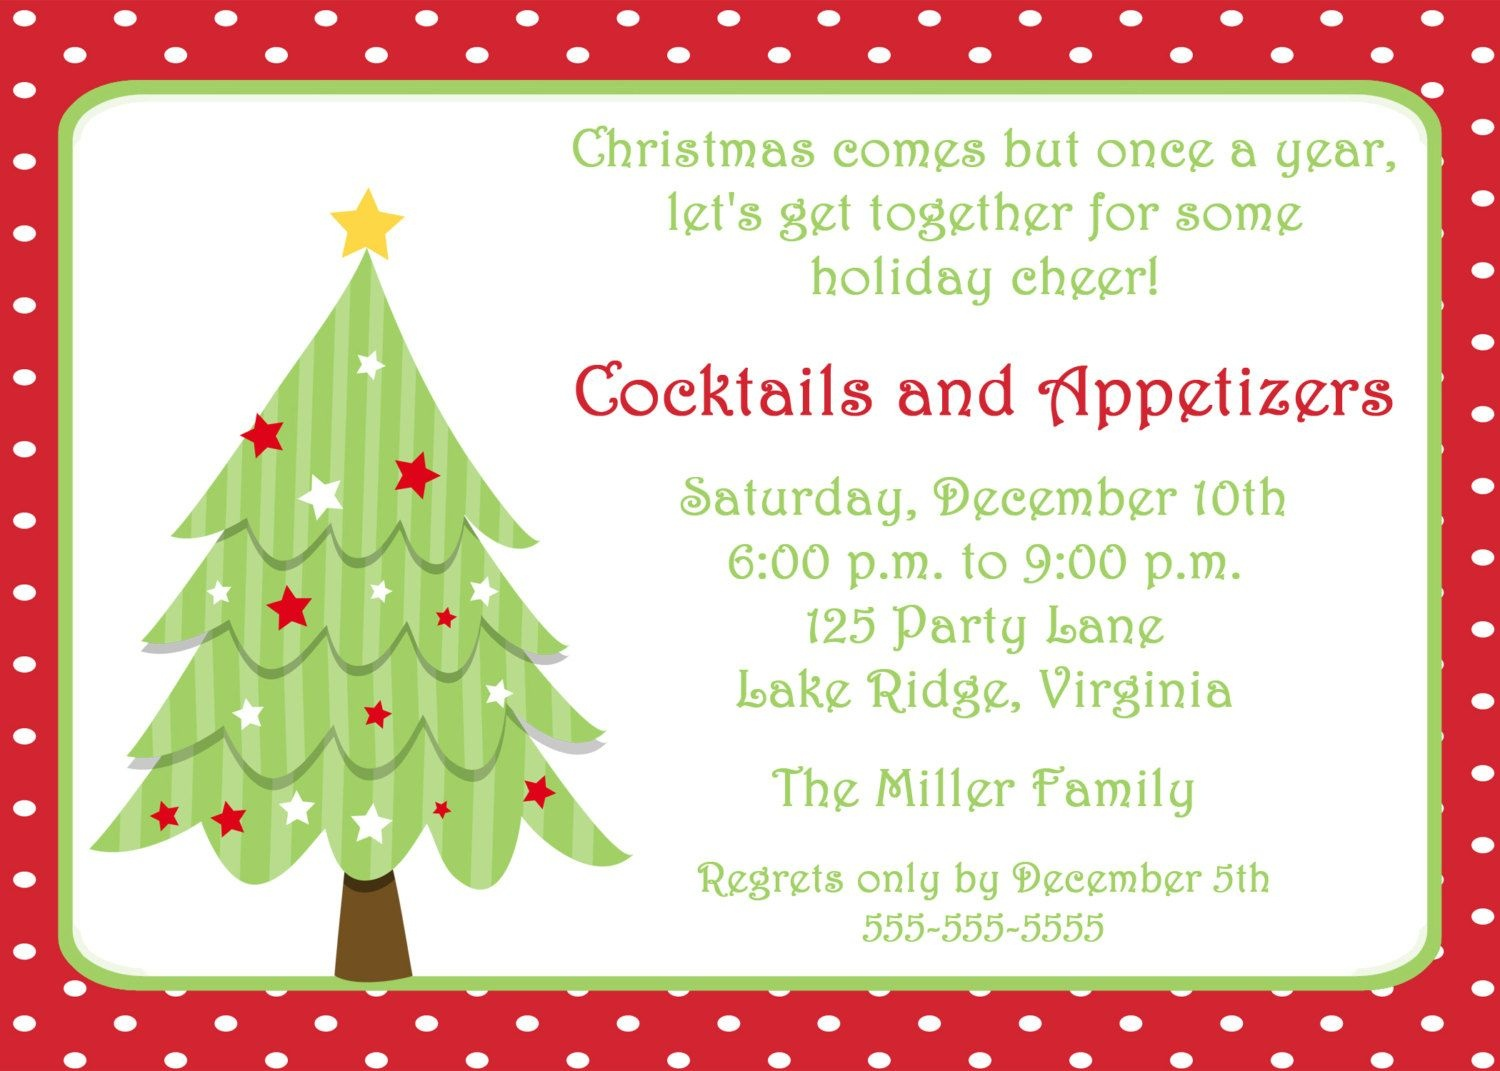 Free Invitations Templates Free | Free Christmas Invitation - Free Printable Personalized Christmas Invitations